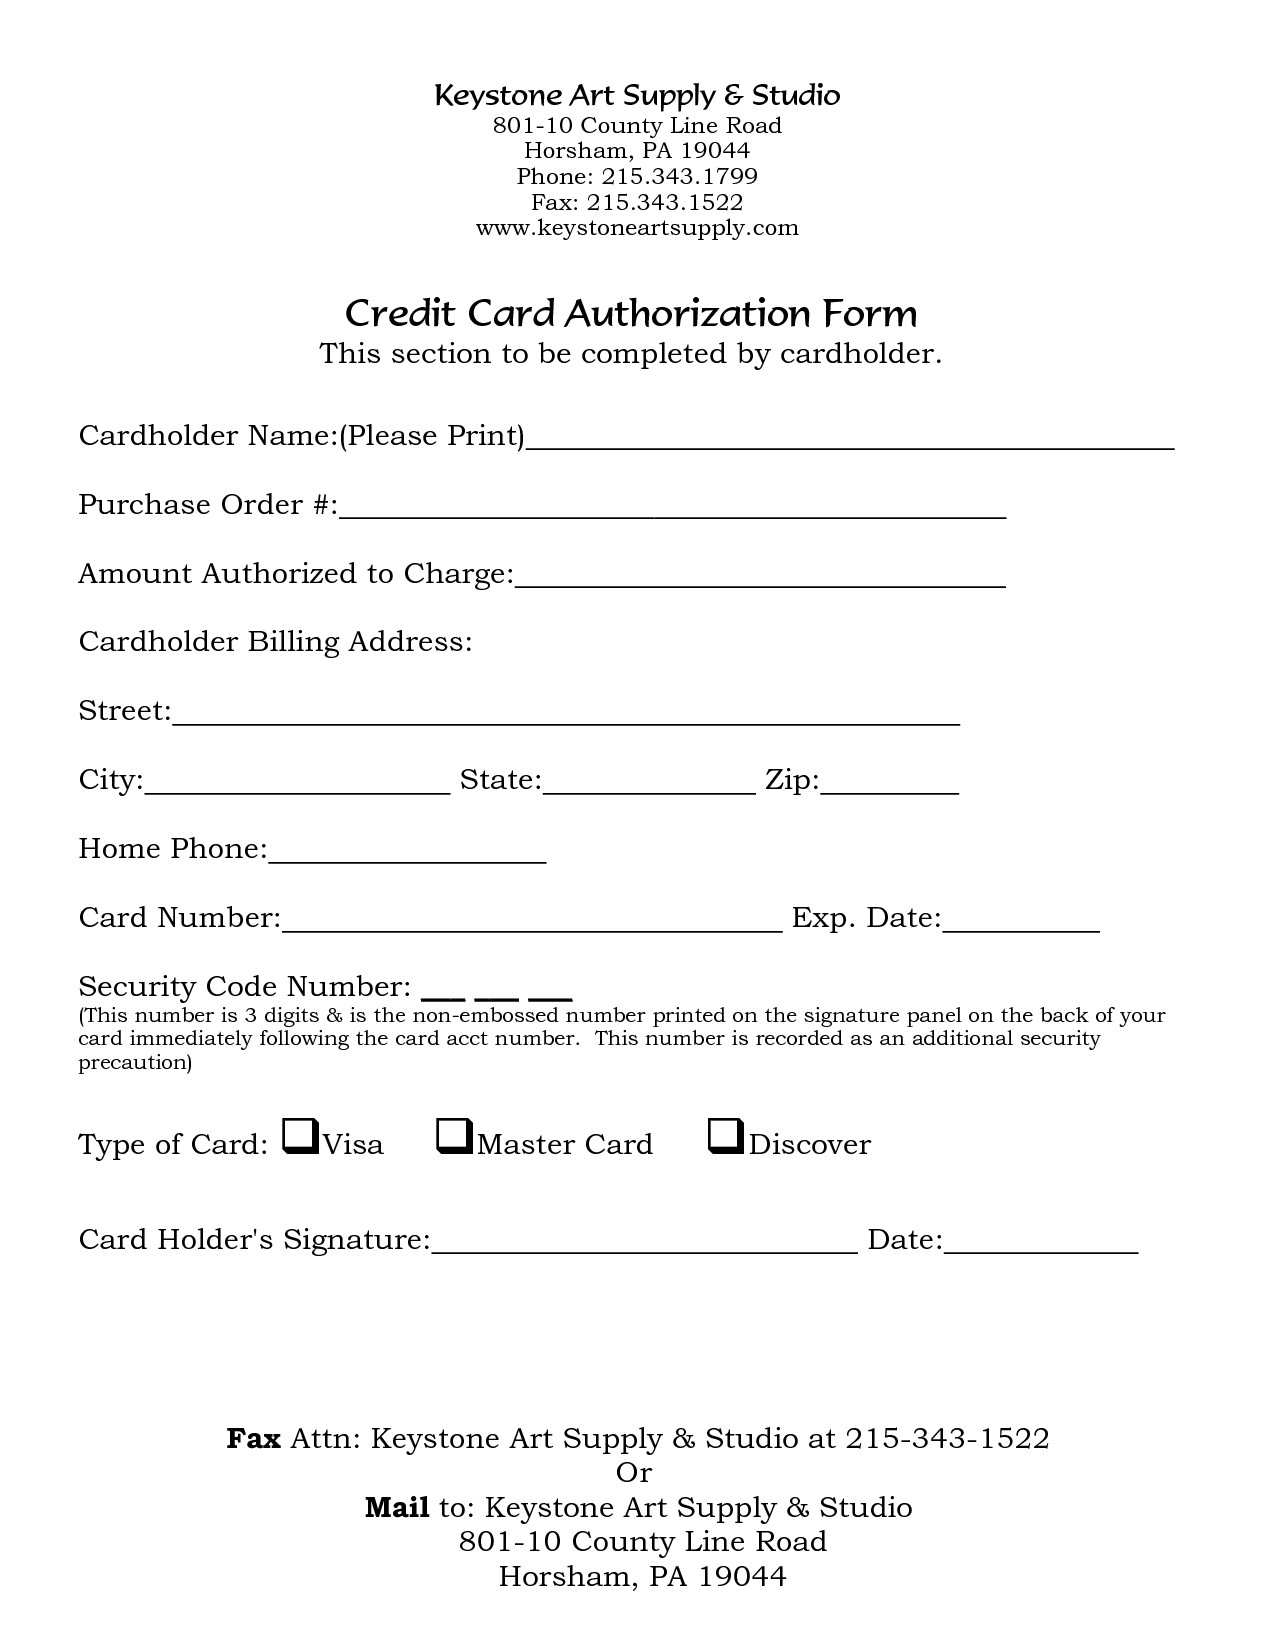 Credit Card Payment form Template 5 Credit Card form Templates Free Sample Templates